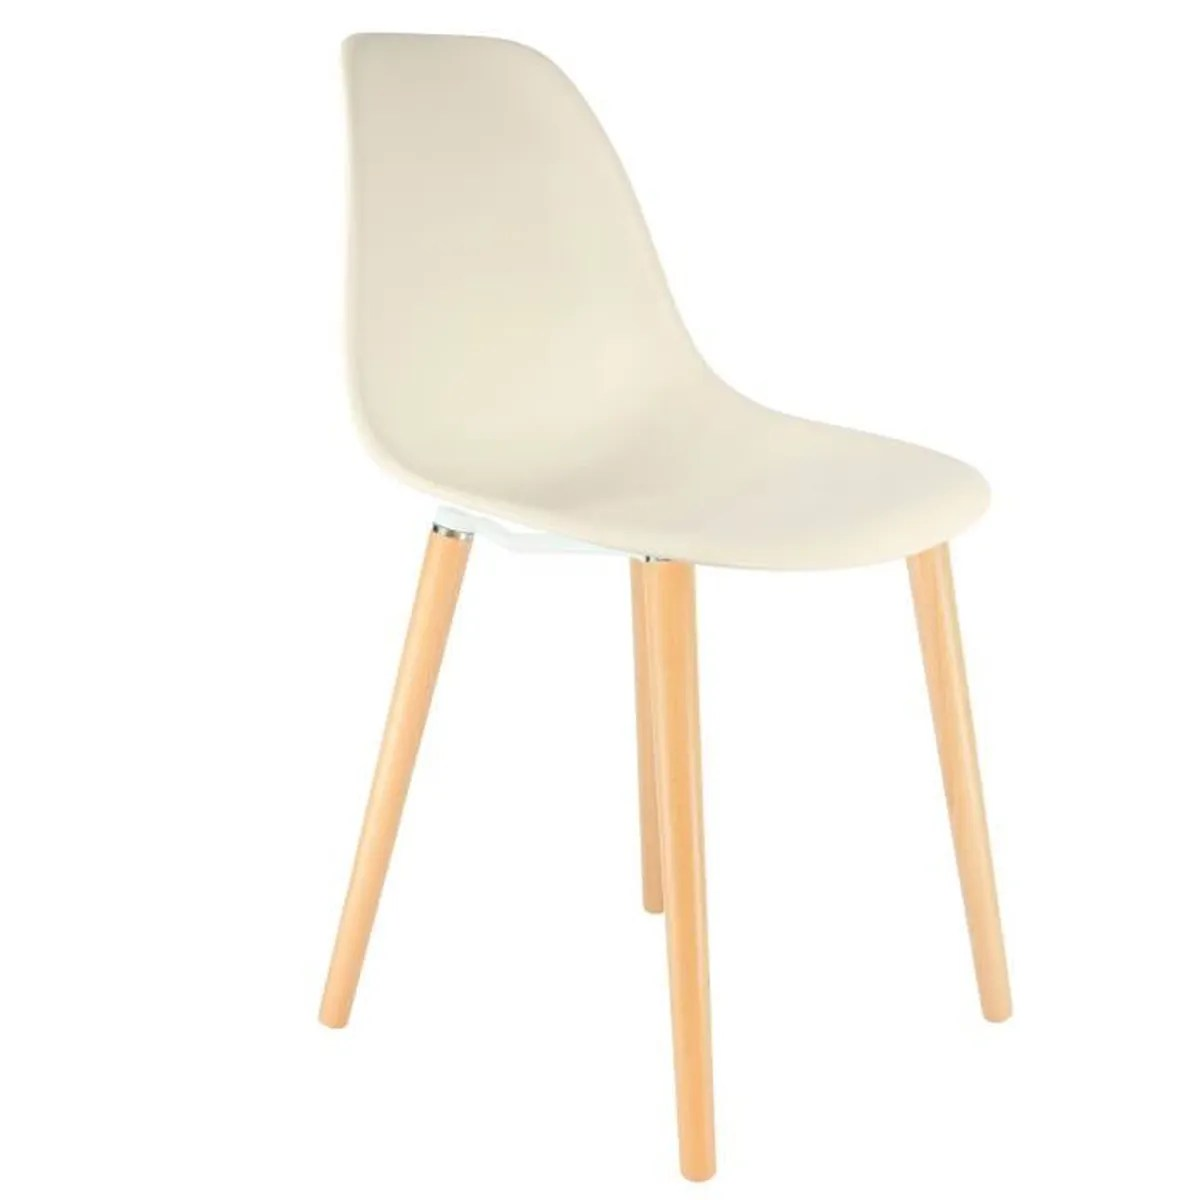 Chaises Privee Chaise Privee Chaise Stw Blanc Cassé Naturel